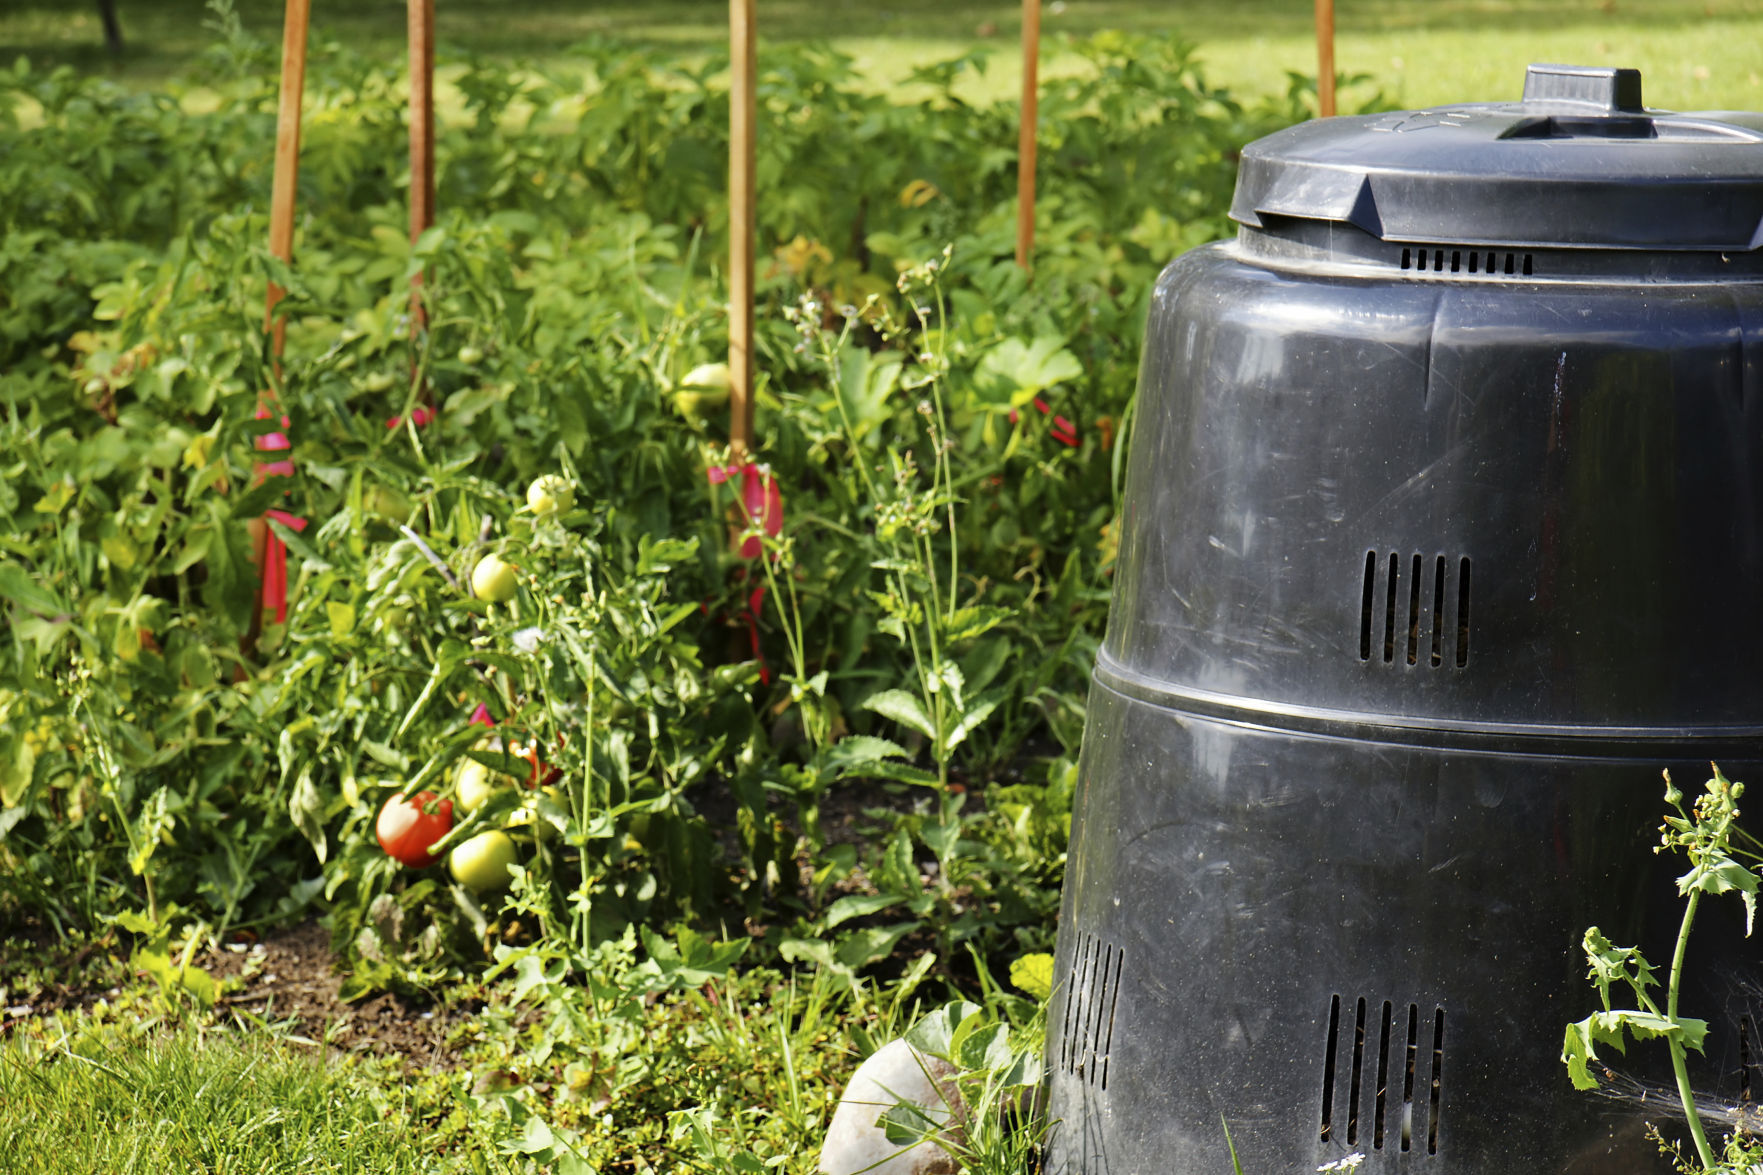 Sunshiny Compost Proposed County Program Seeks To Complement Backyard Composting Ramsey County Compost Midway Hours Ramsey County Compost Site Pierce Butler houzz-02 Ramsey County Compost